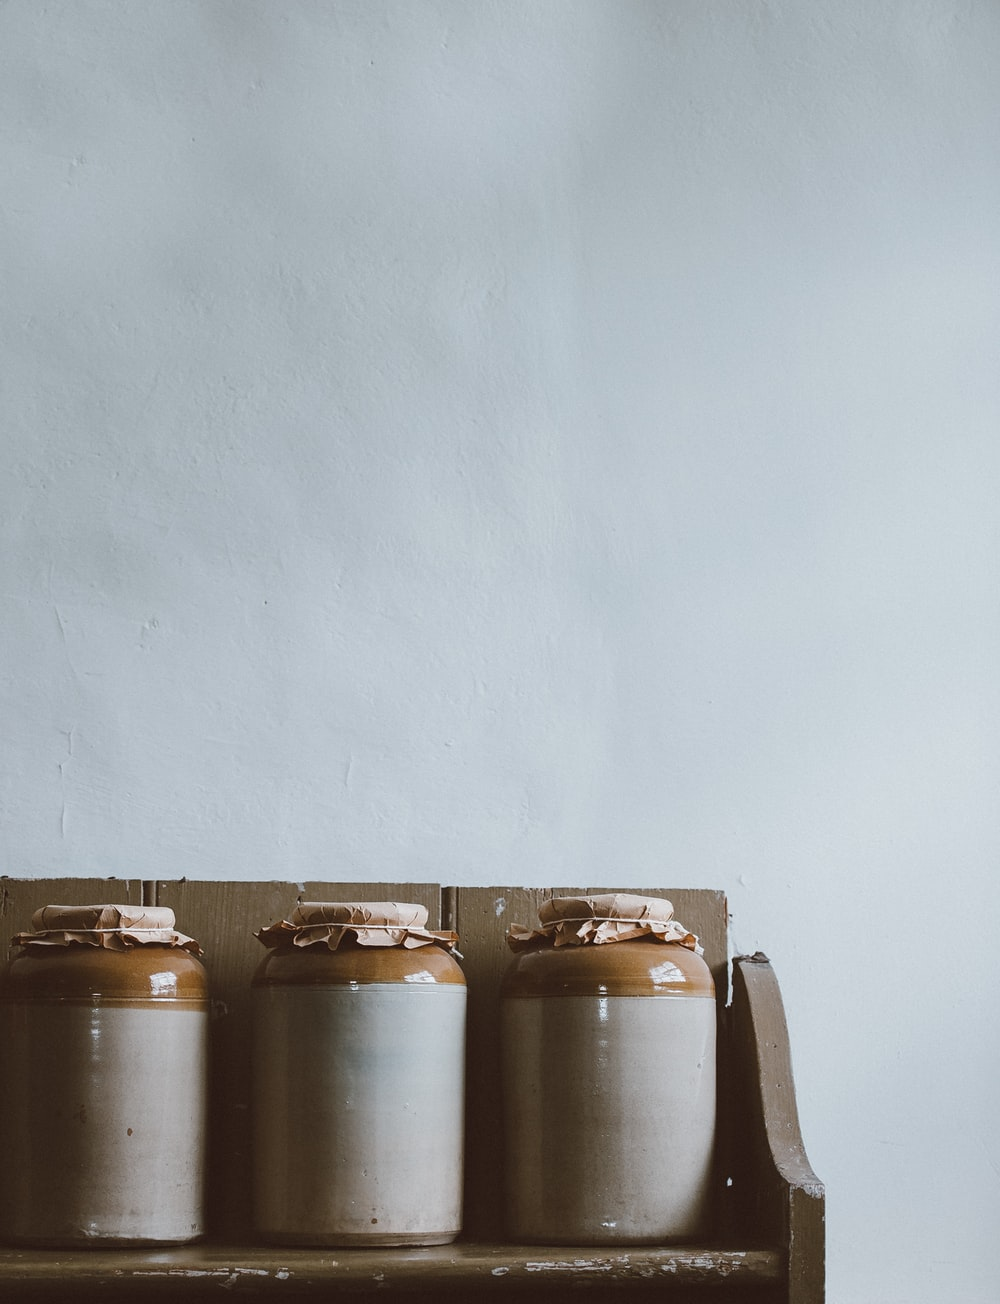 three white-and-brown ceramic jars on brown wooden rack